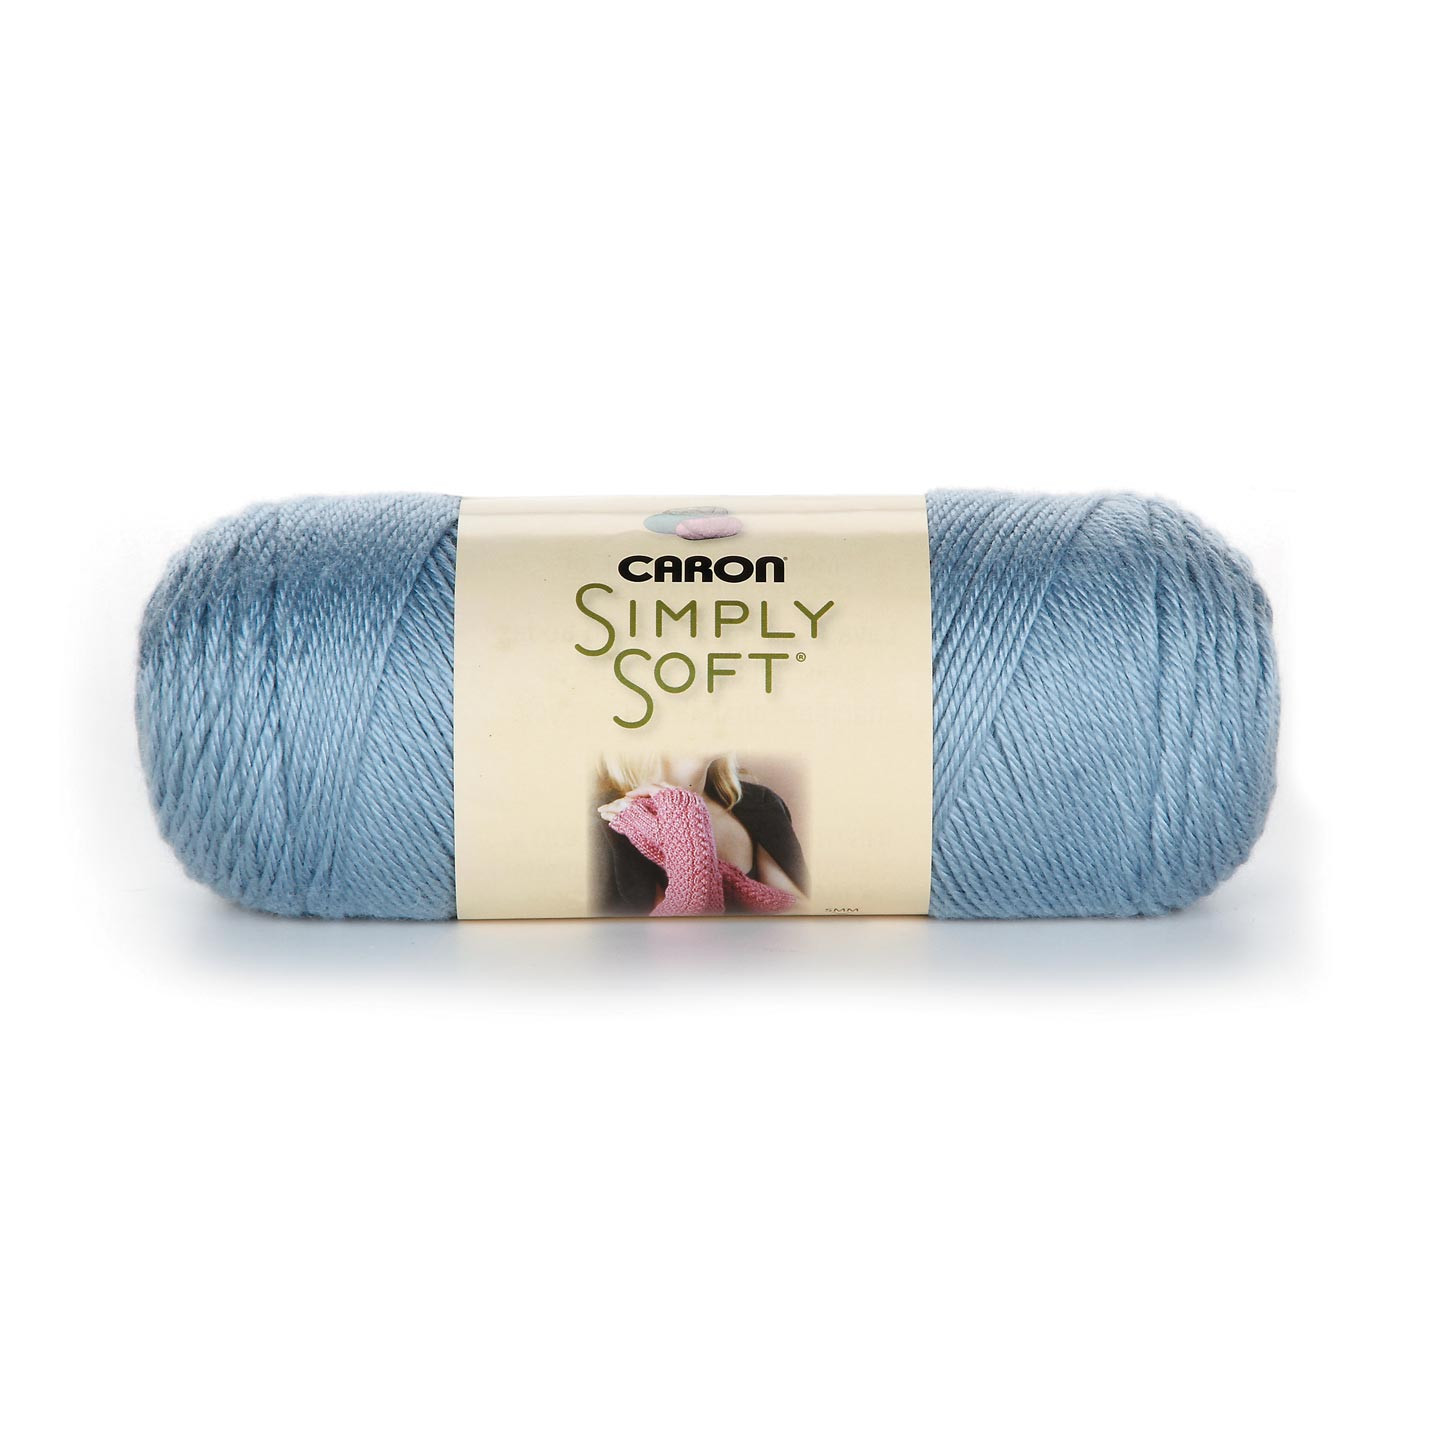 Caron Simply soft Awesome Caron Simply soft Yarn Light Country Blue Of Amazing 46 Images Caron Simply soft